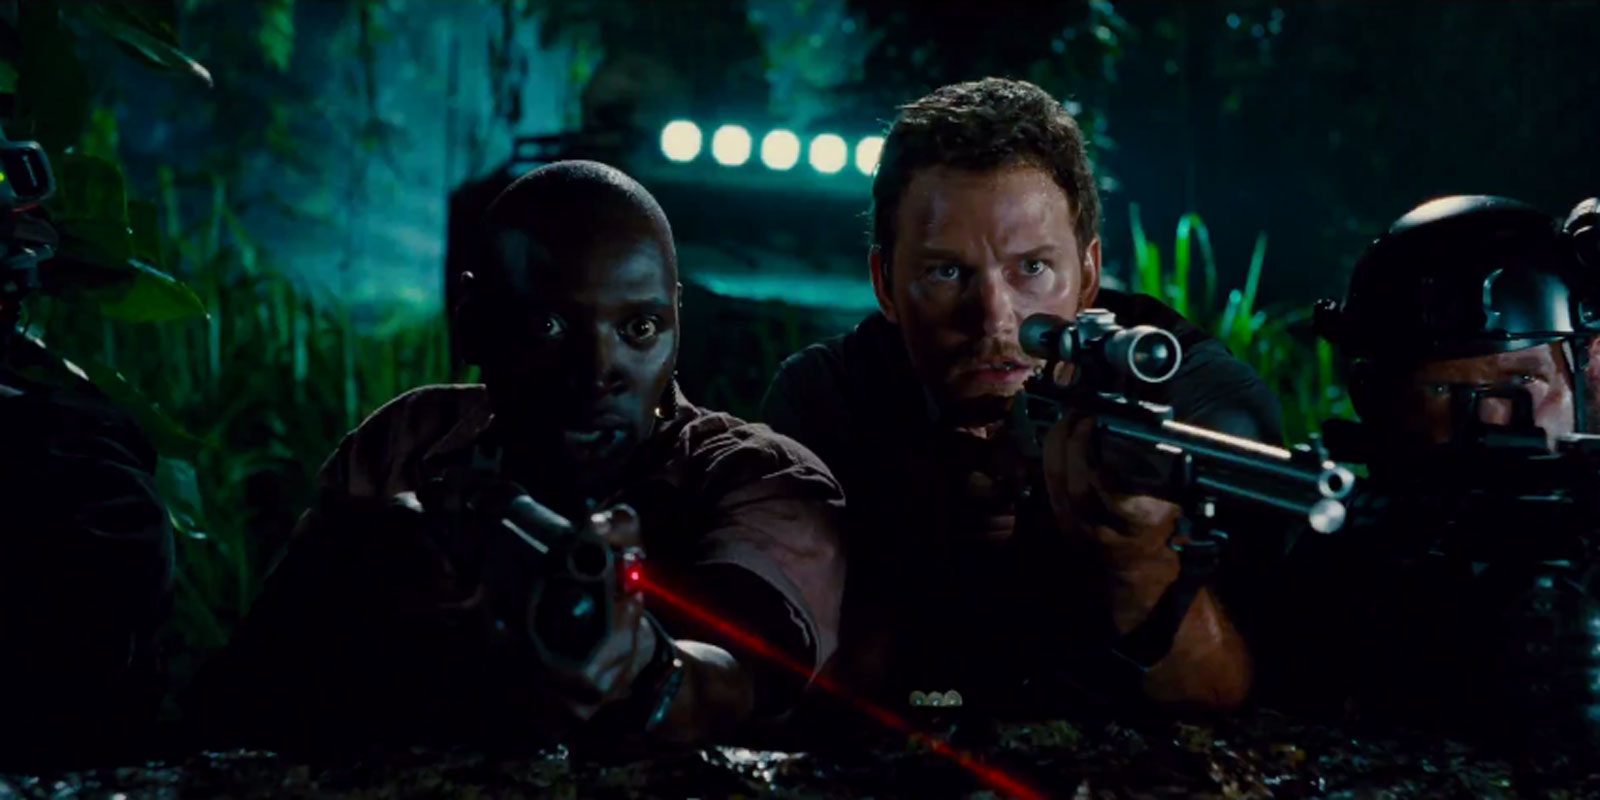 jurassic_world-still_2